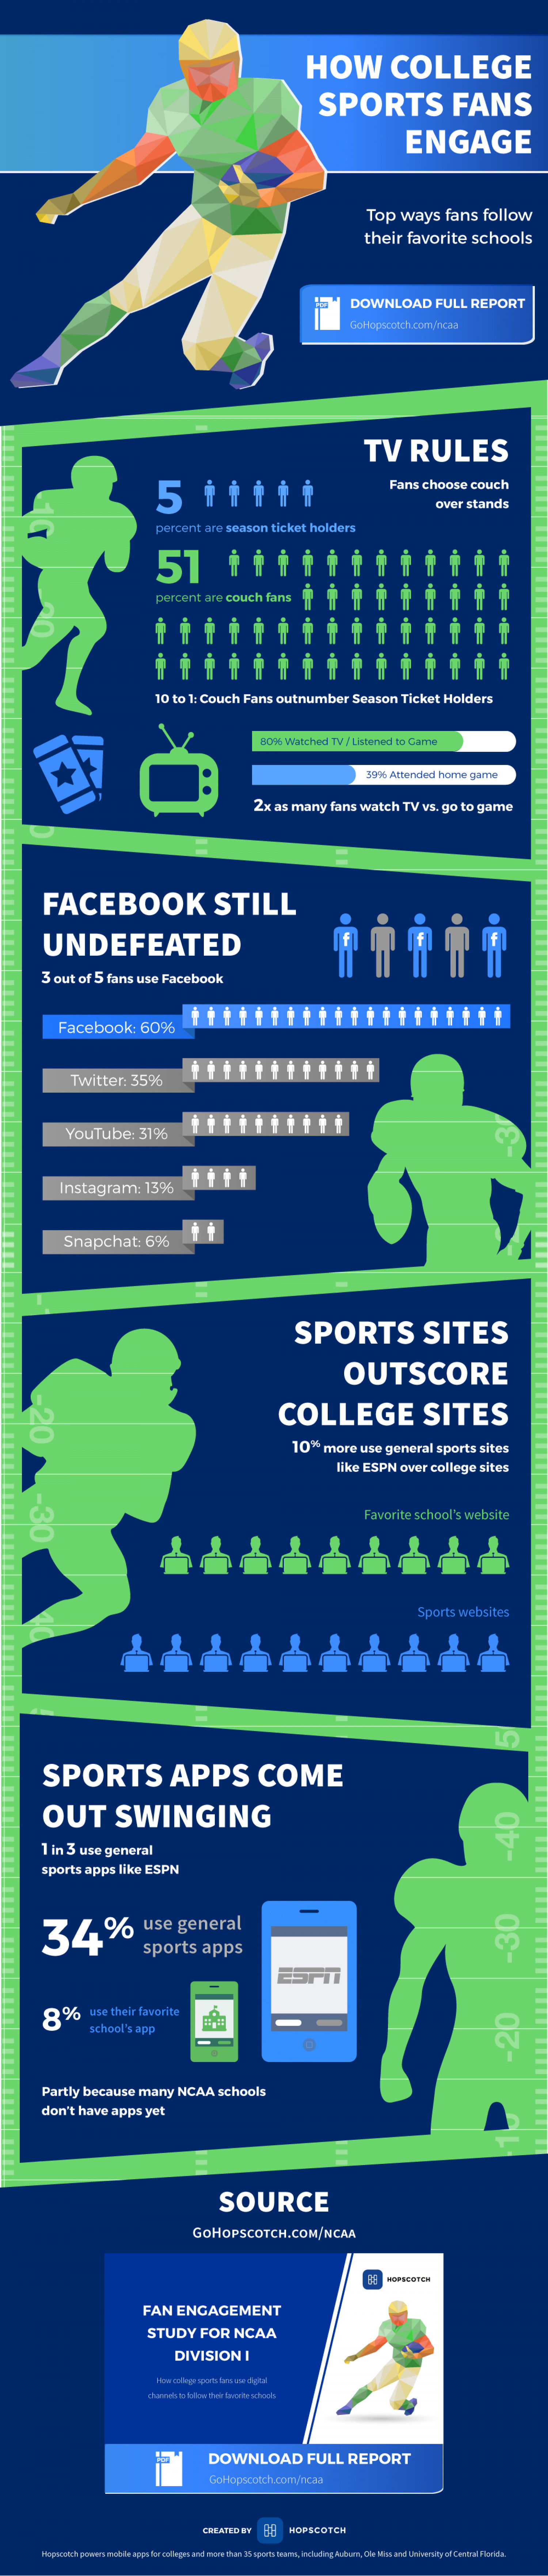 How College Sports Fans Engage Infographic